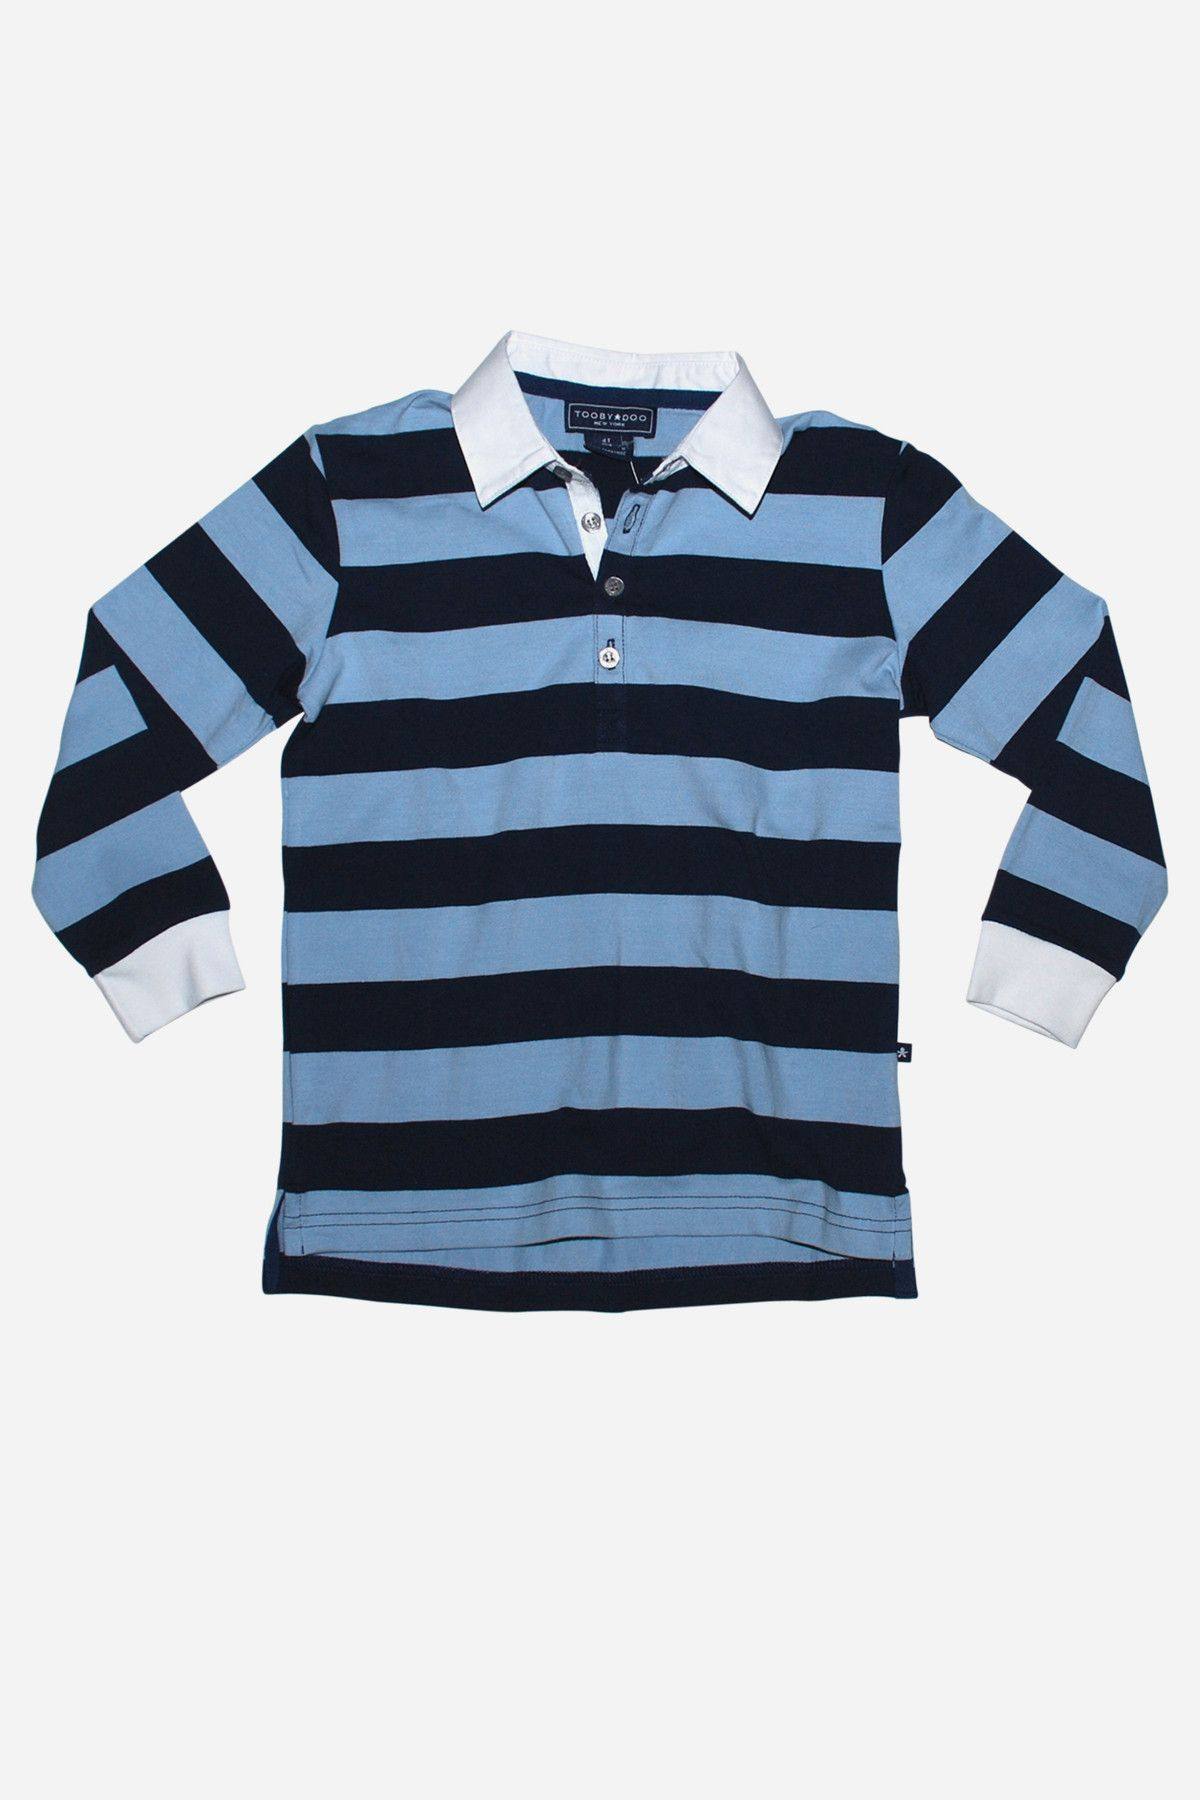 e7ac304d737 Toobydoo Blue Stripe Rugby Shirt | Rugby and Boy fashion